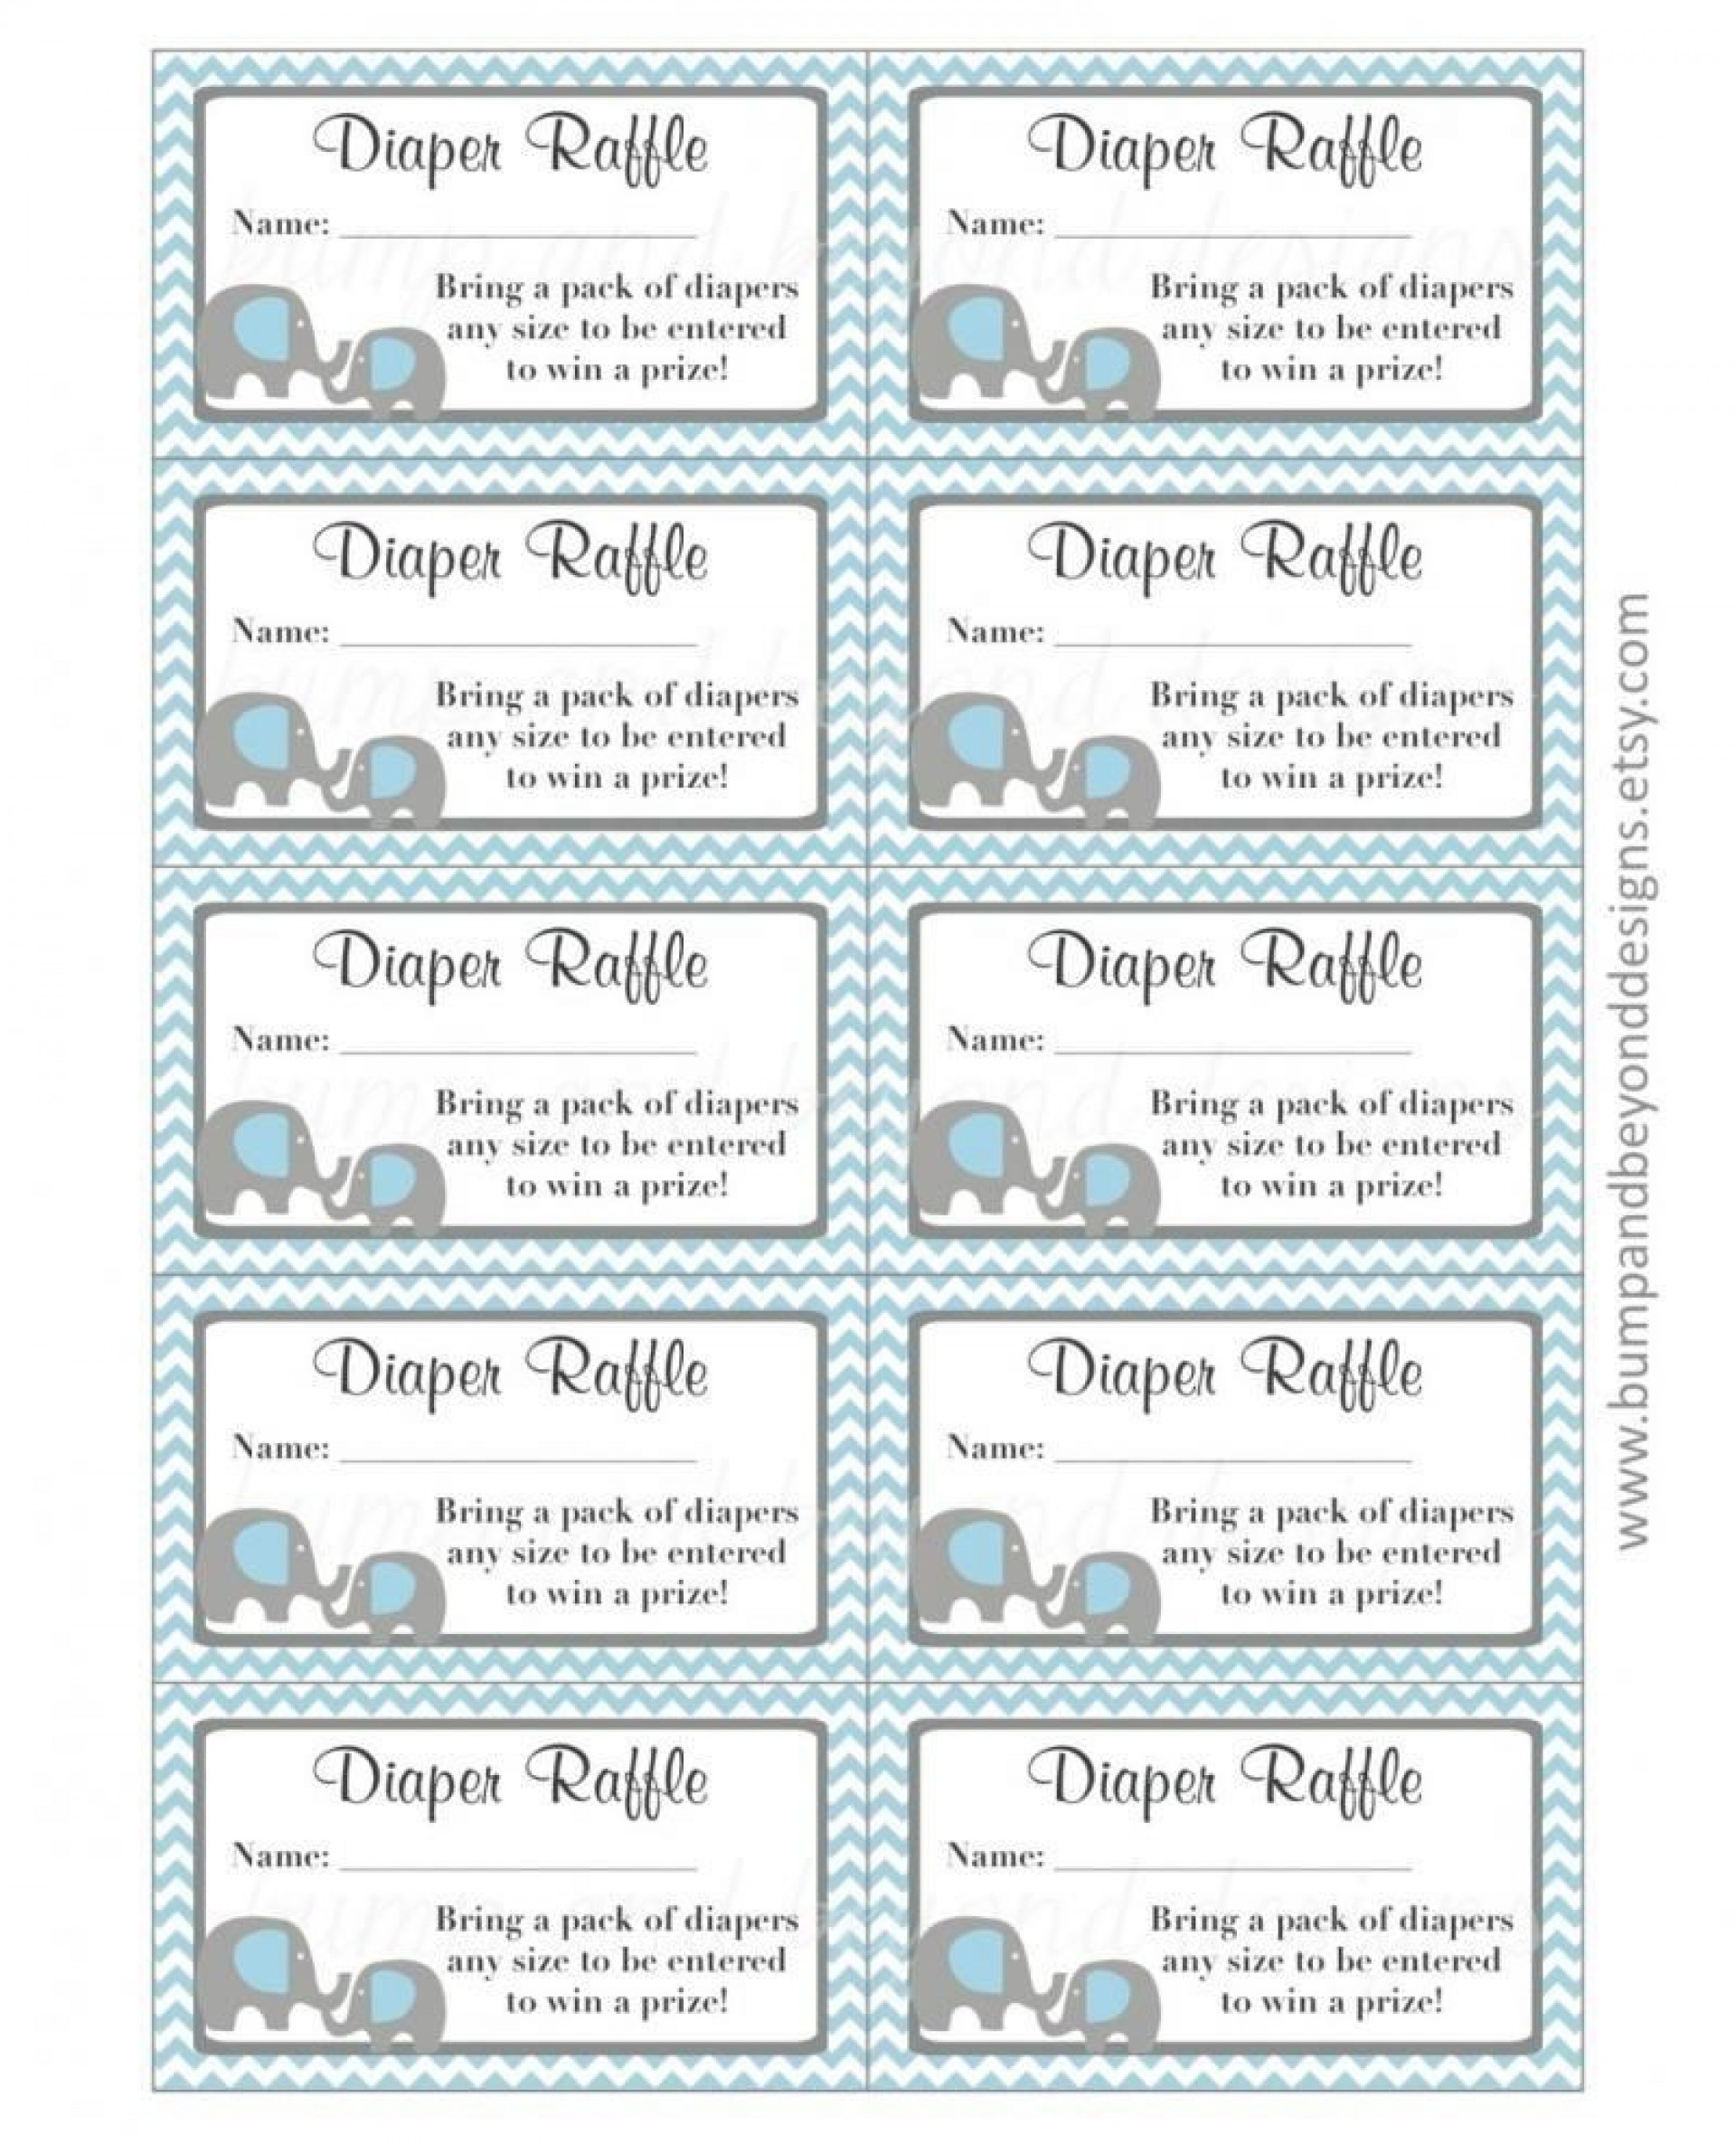 002 Formidable Diaper Raffle Ticket Template Sample  Boy Free Printable Print Black And White1920